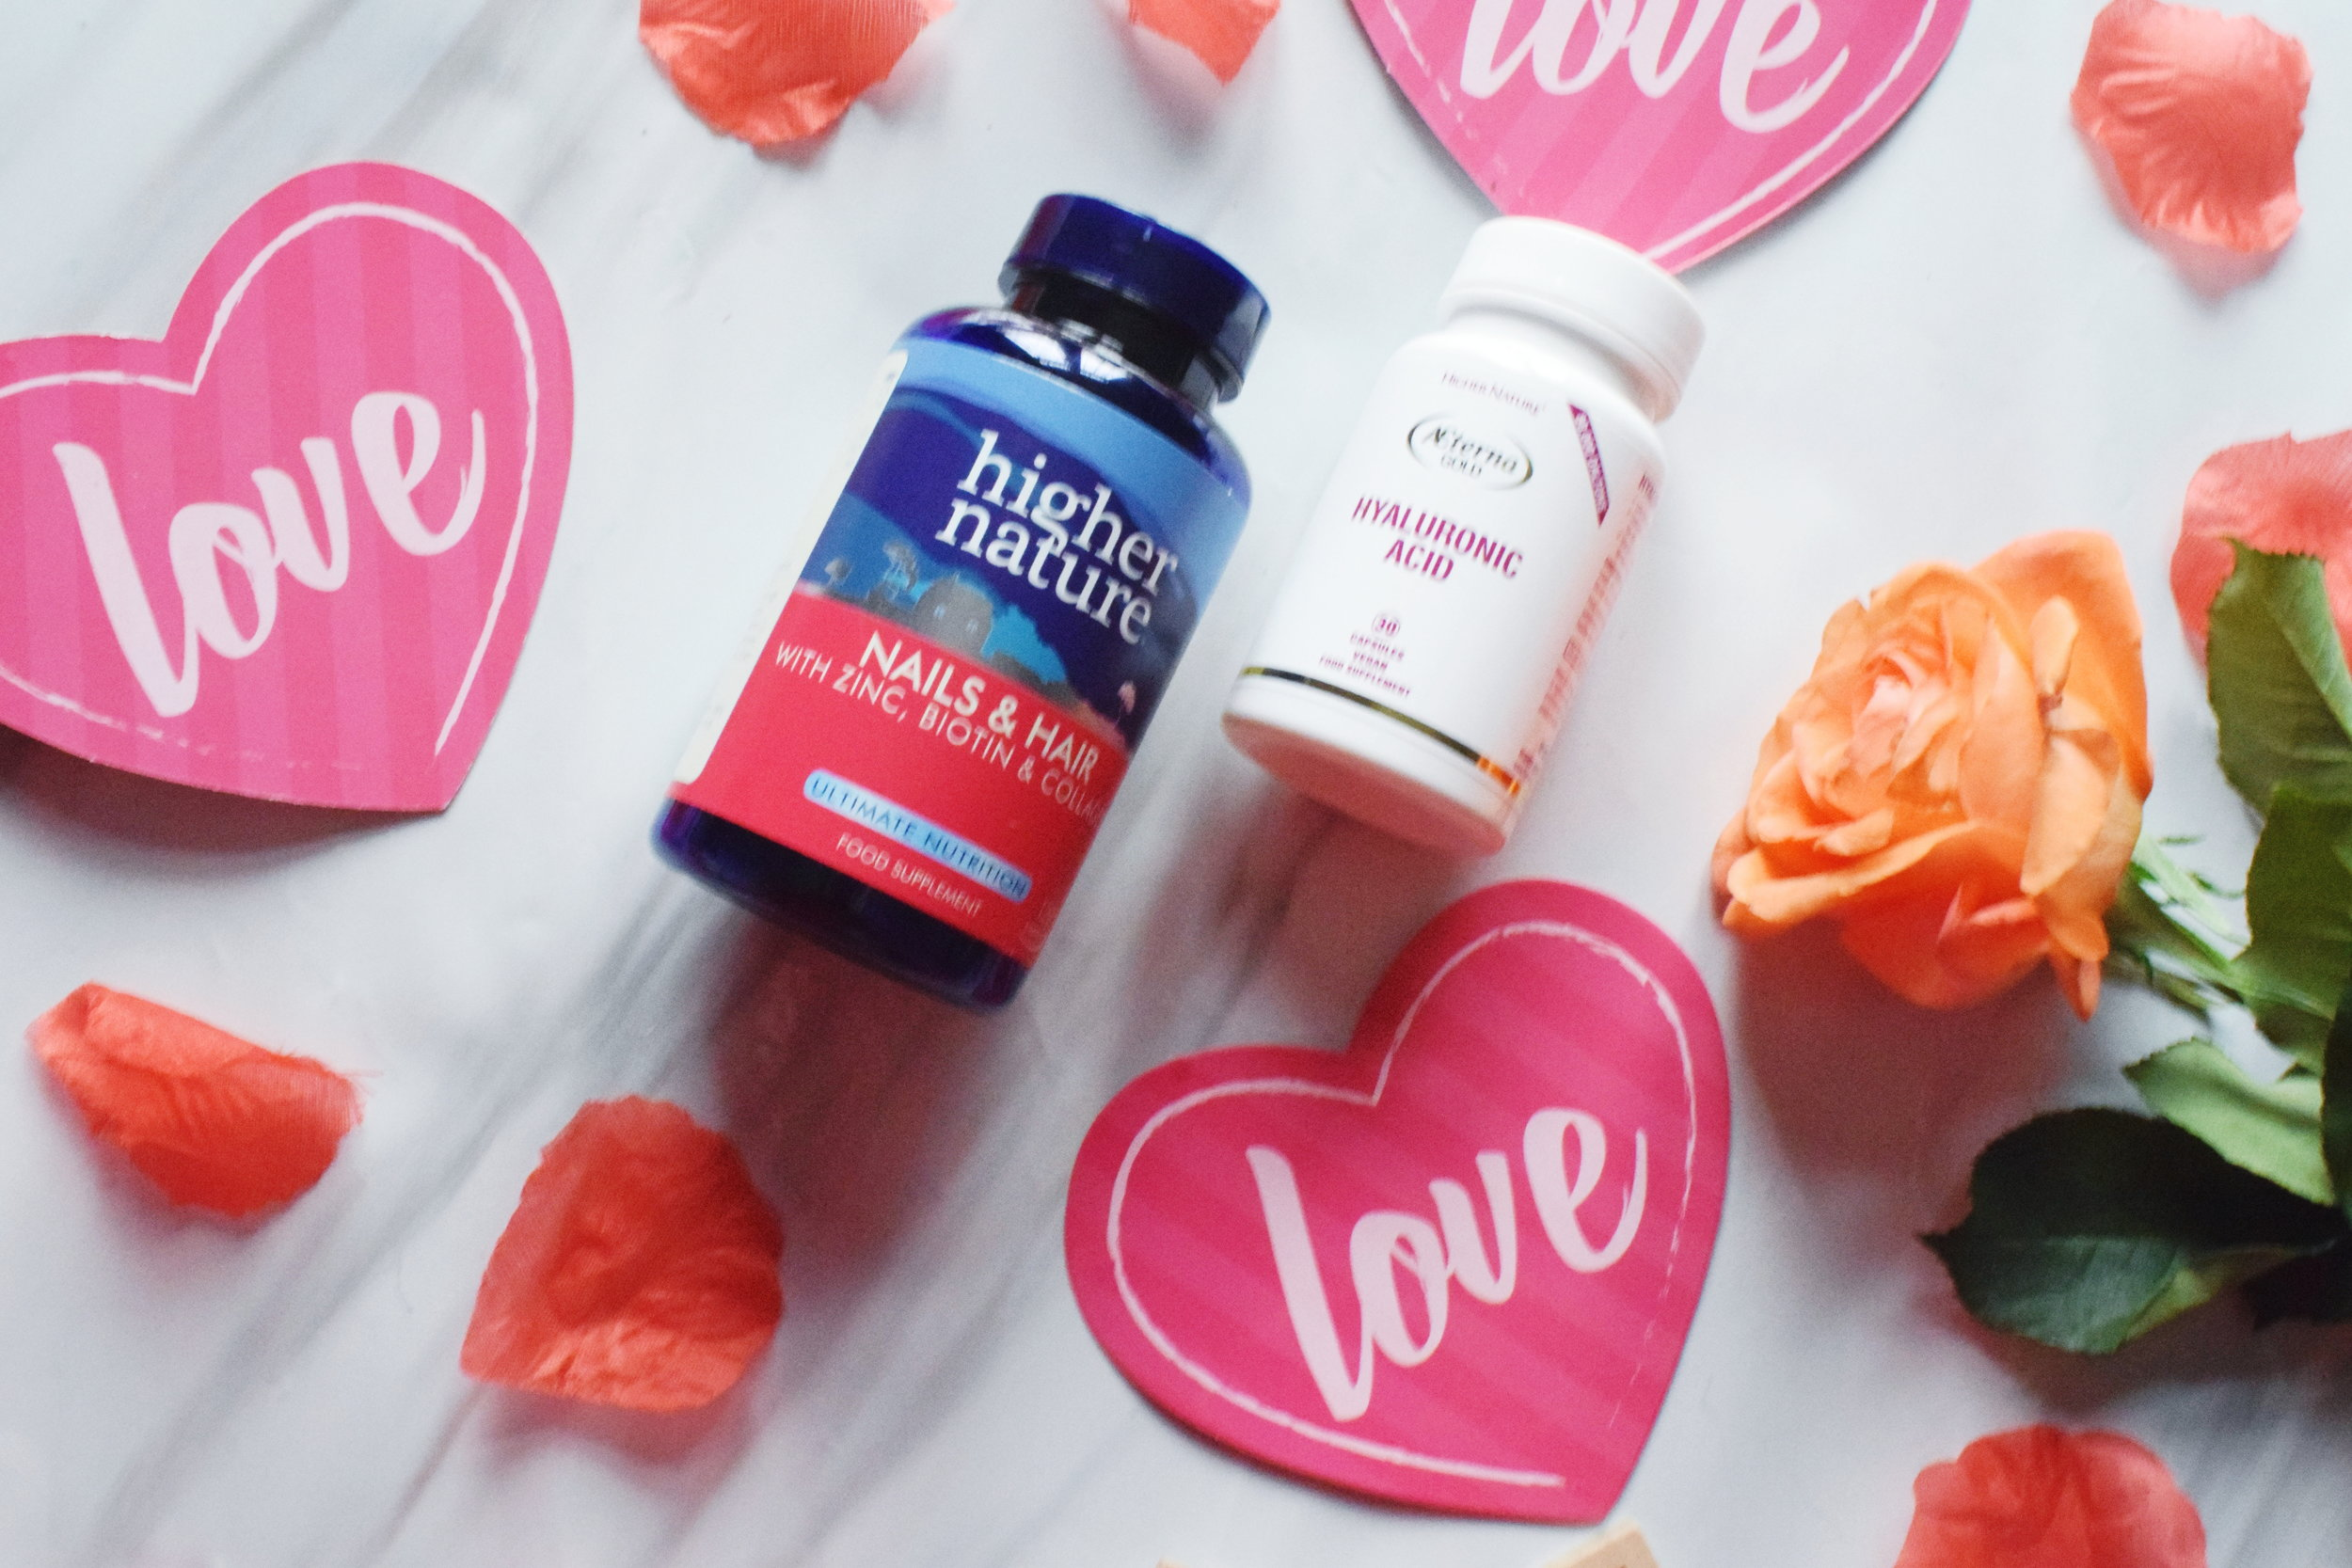 Higher Nature health supplements Mother's Day gifts 2019